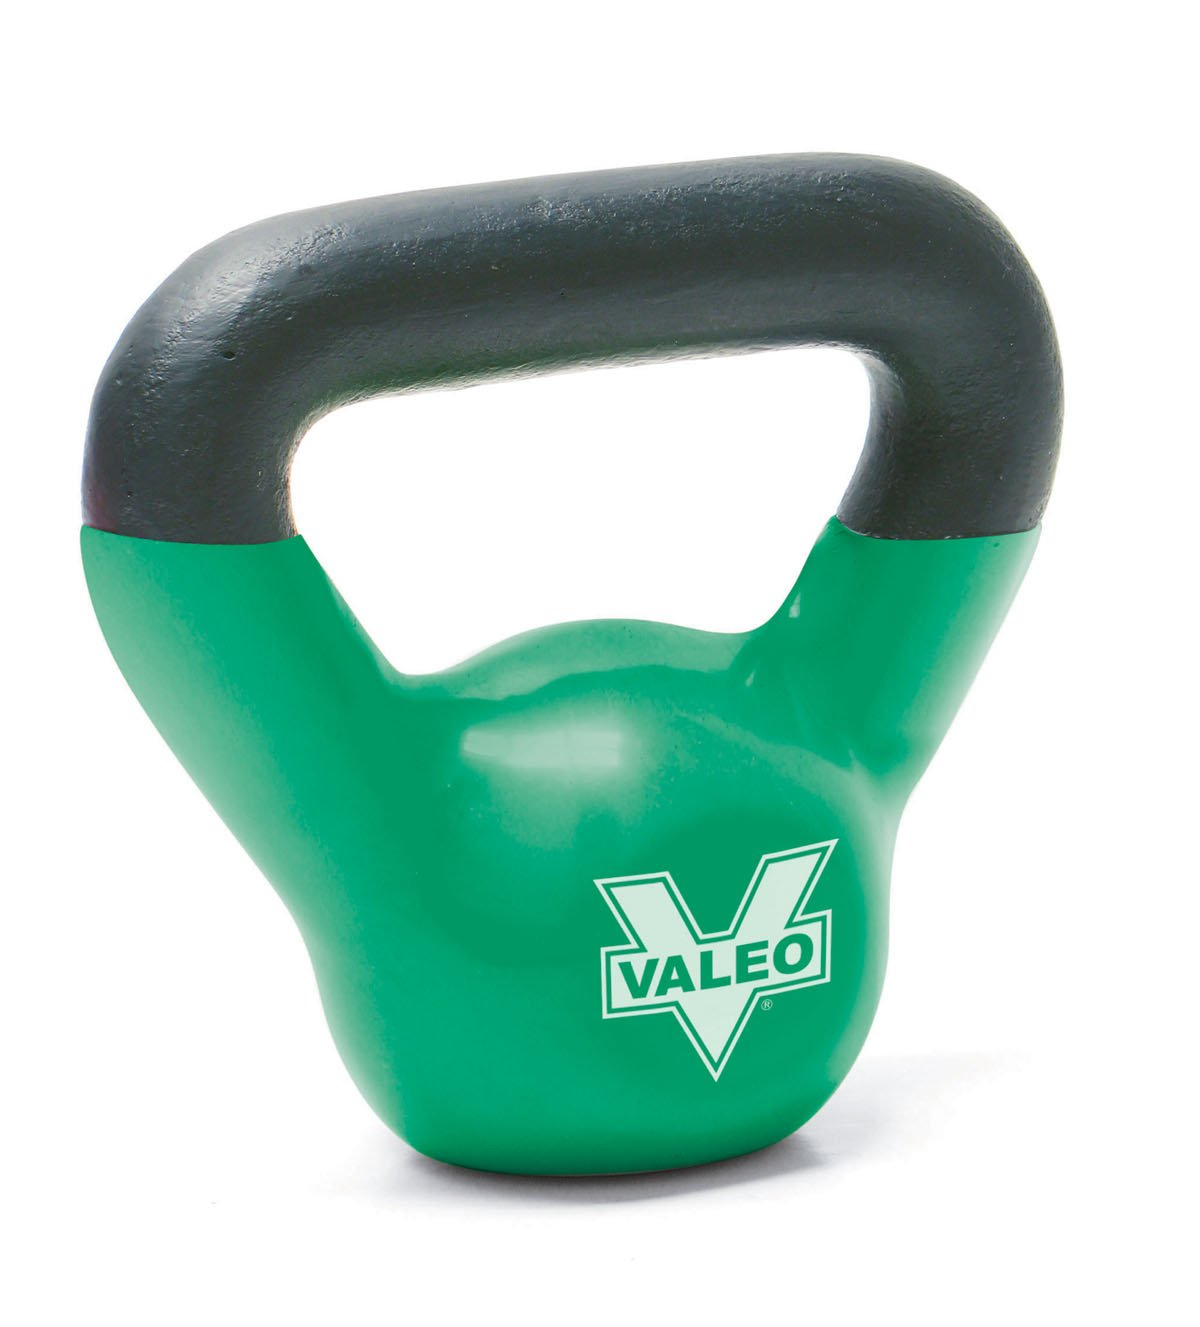 Valeo Green 5-Pound Kettle Bell Weight With Cast Iron Handle For Squats, Pulls and Overhead Throws To Build Strength And Endurance